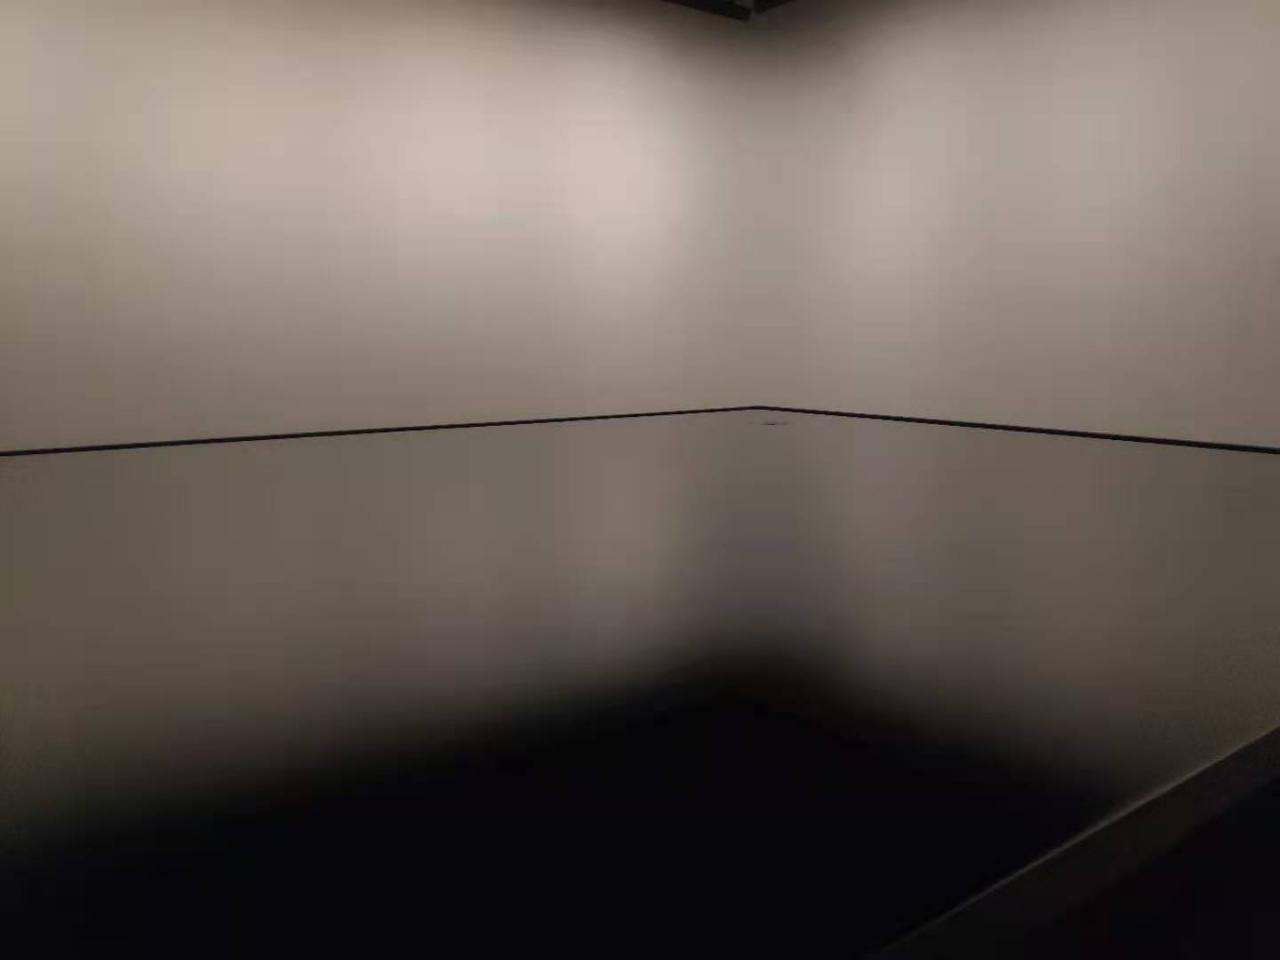 Ryuichi Sakamoto, Shiro Takatani, water state 1 , 2013, installation, water basin with droplet device, 16-channel audio, stone. Commissioned by Yamaguchi Center for Arts and Media.